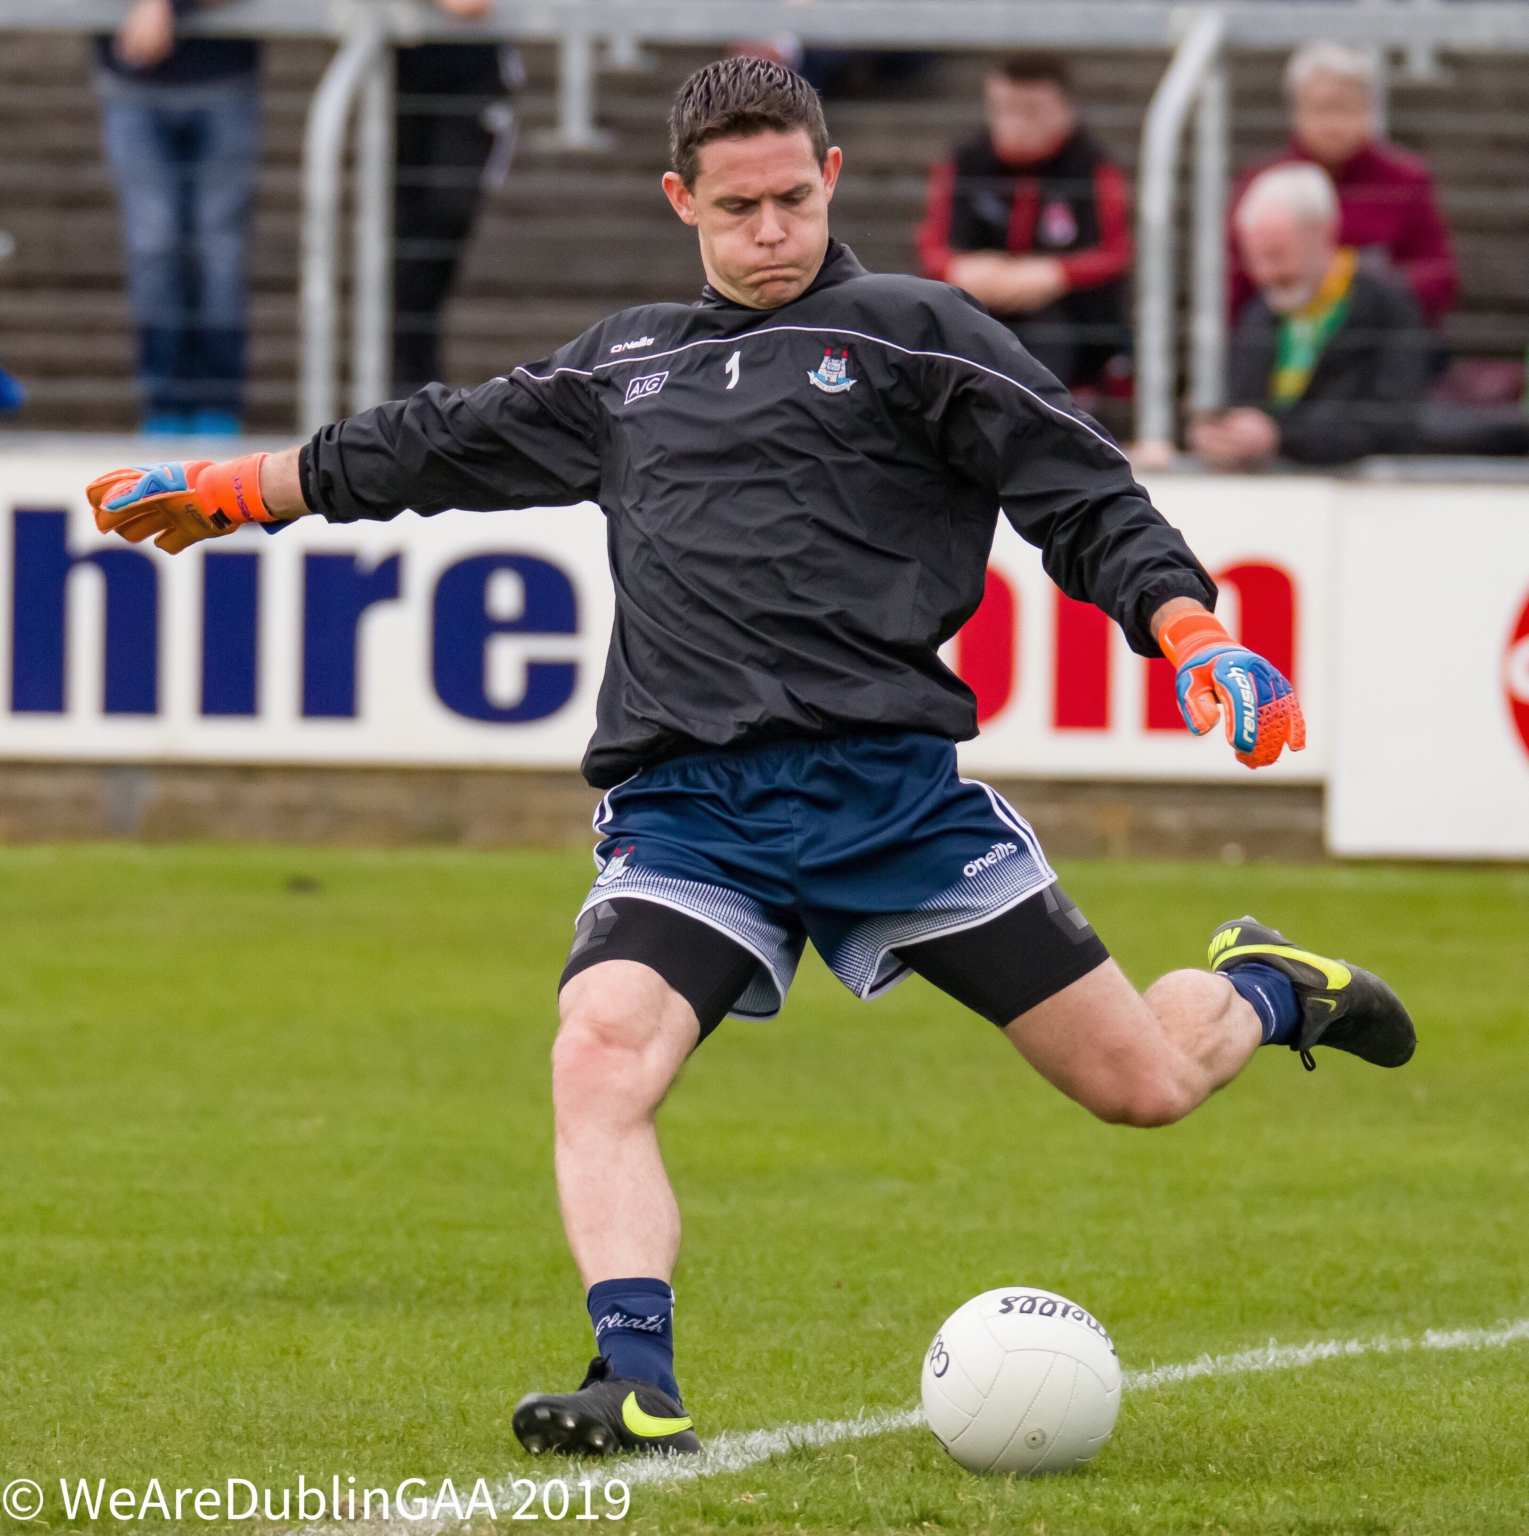 Stephen Cluxton about to kick the ball off the ground during a warm-up before a game, Cluxton is nominated for the PwC GAA/GPA Player of the Year award.